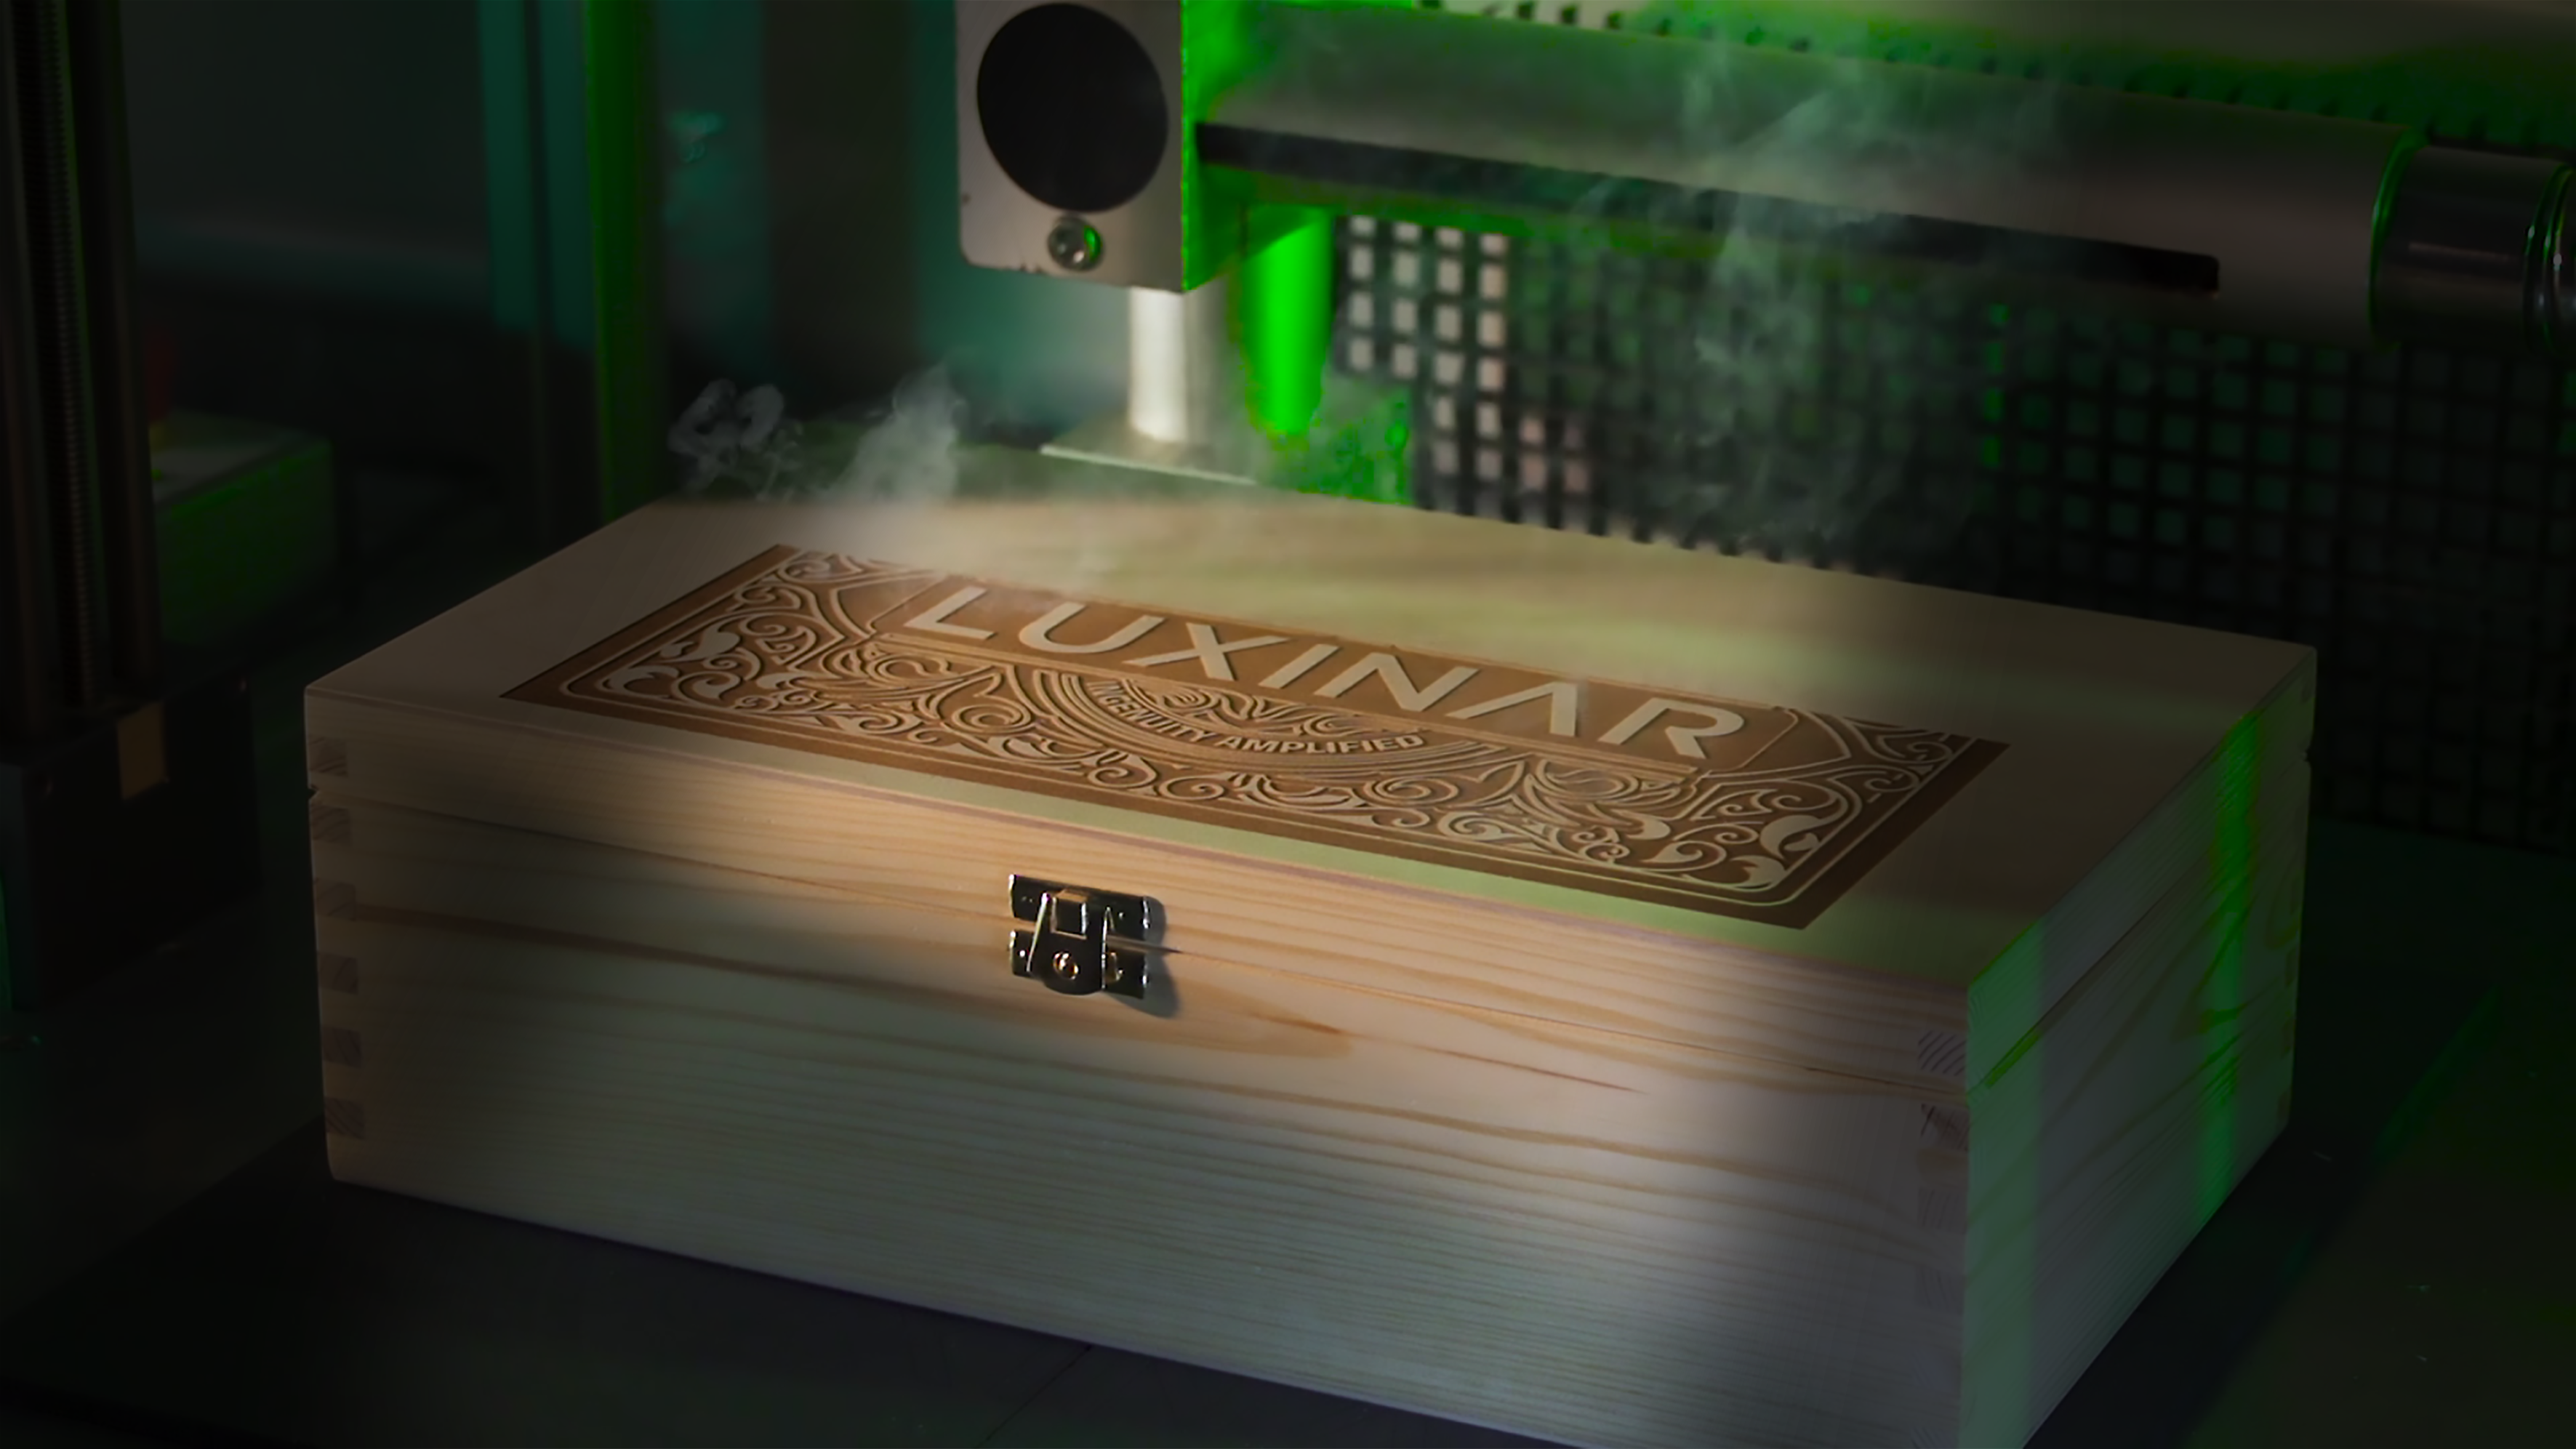 CO2 laser marking wooden box with Luxinar logoCO2 laser marking wooden box with Luxinar logo